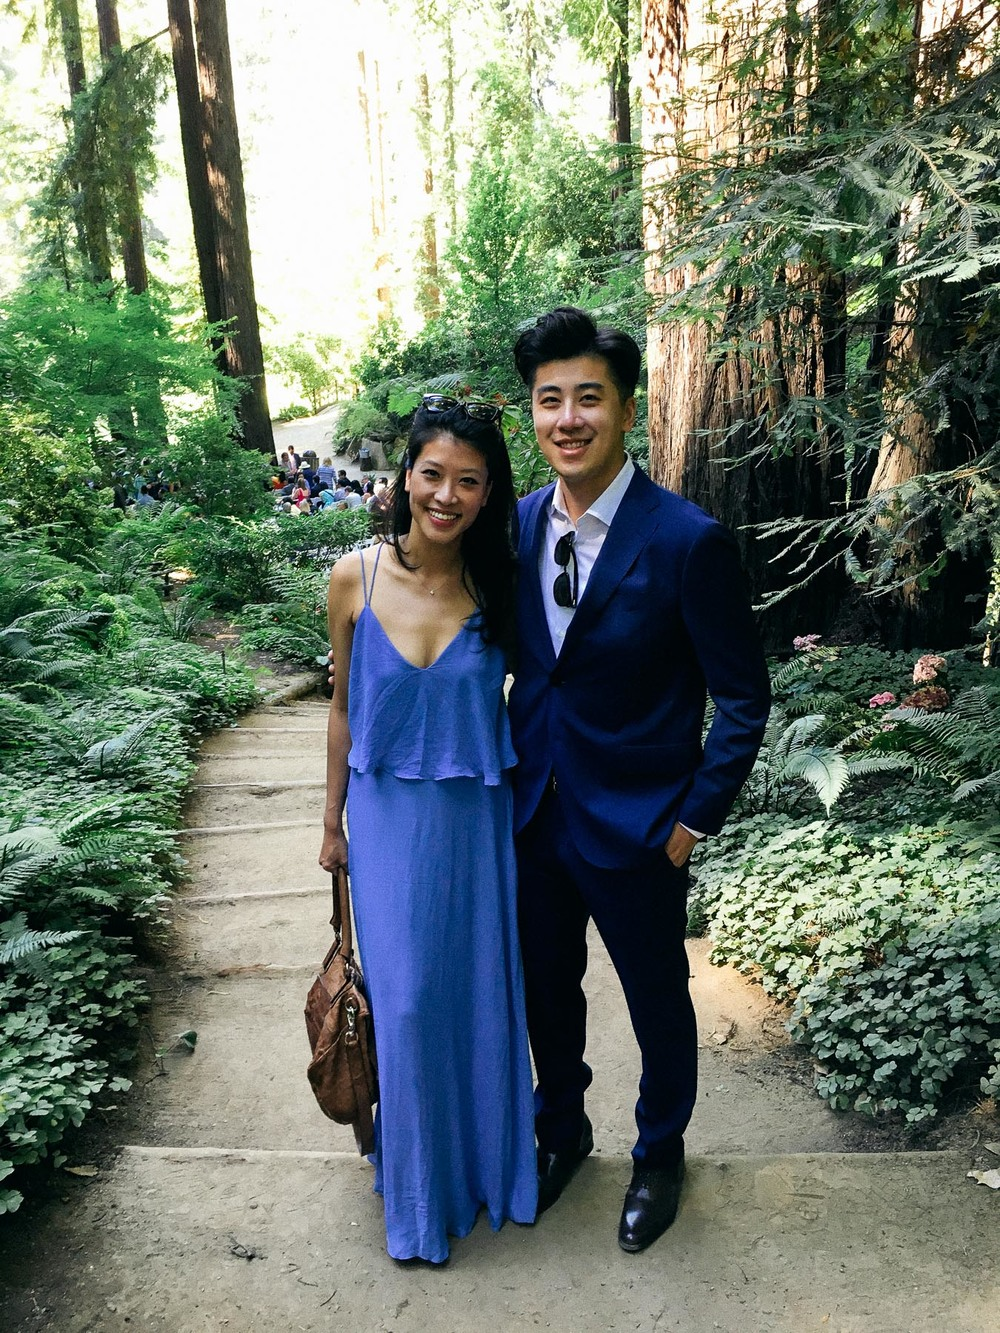 Wearing an old Zara maxi dress. Actually looks better in pictures than in real life - the blue is a bit too light for my skin tone. But really appropriate for this kind of wedding, what do you think?